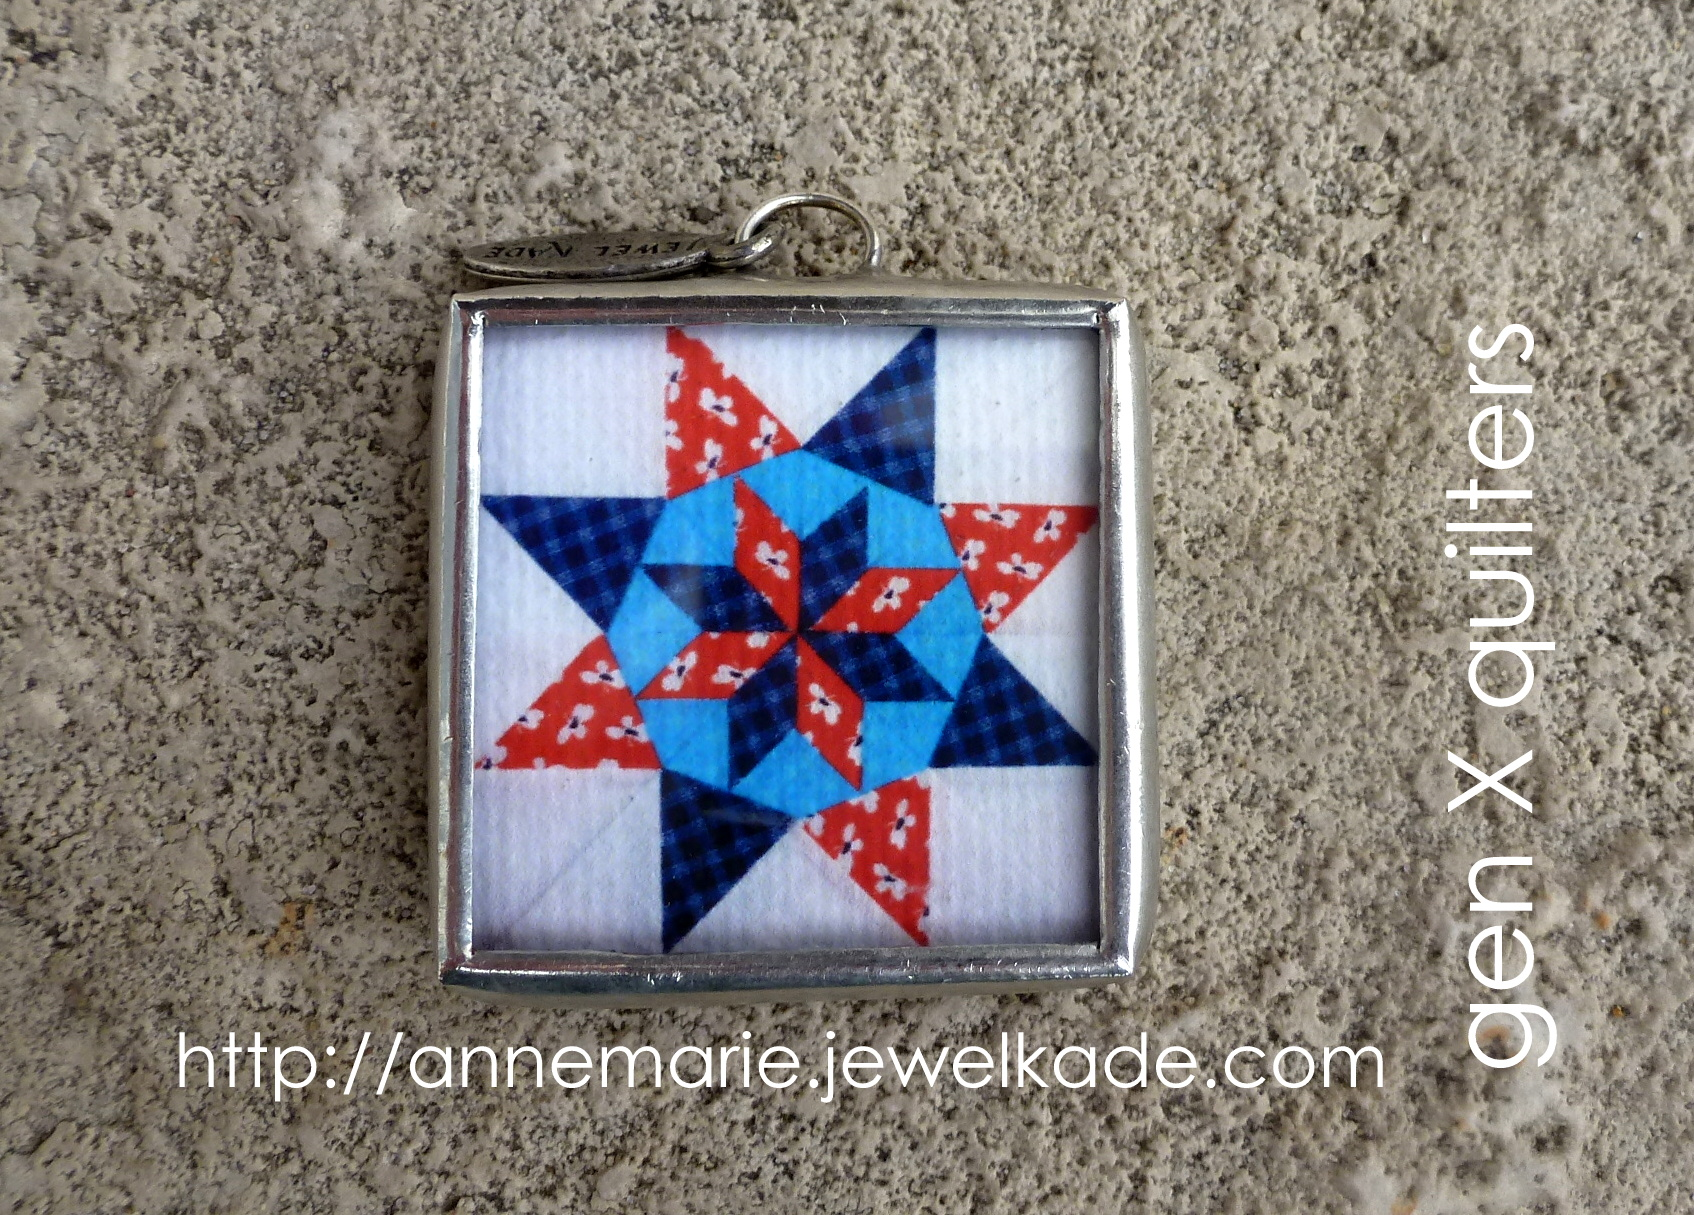 quilt block jewel kade charm back